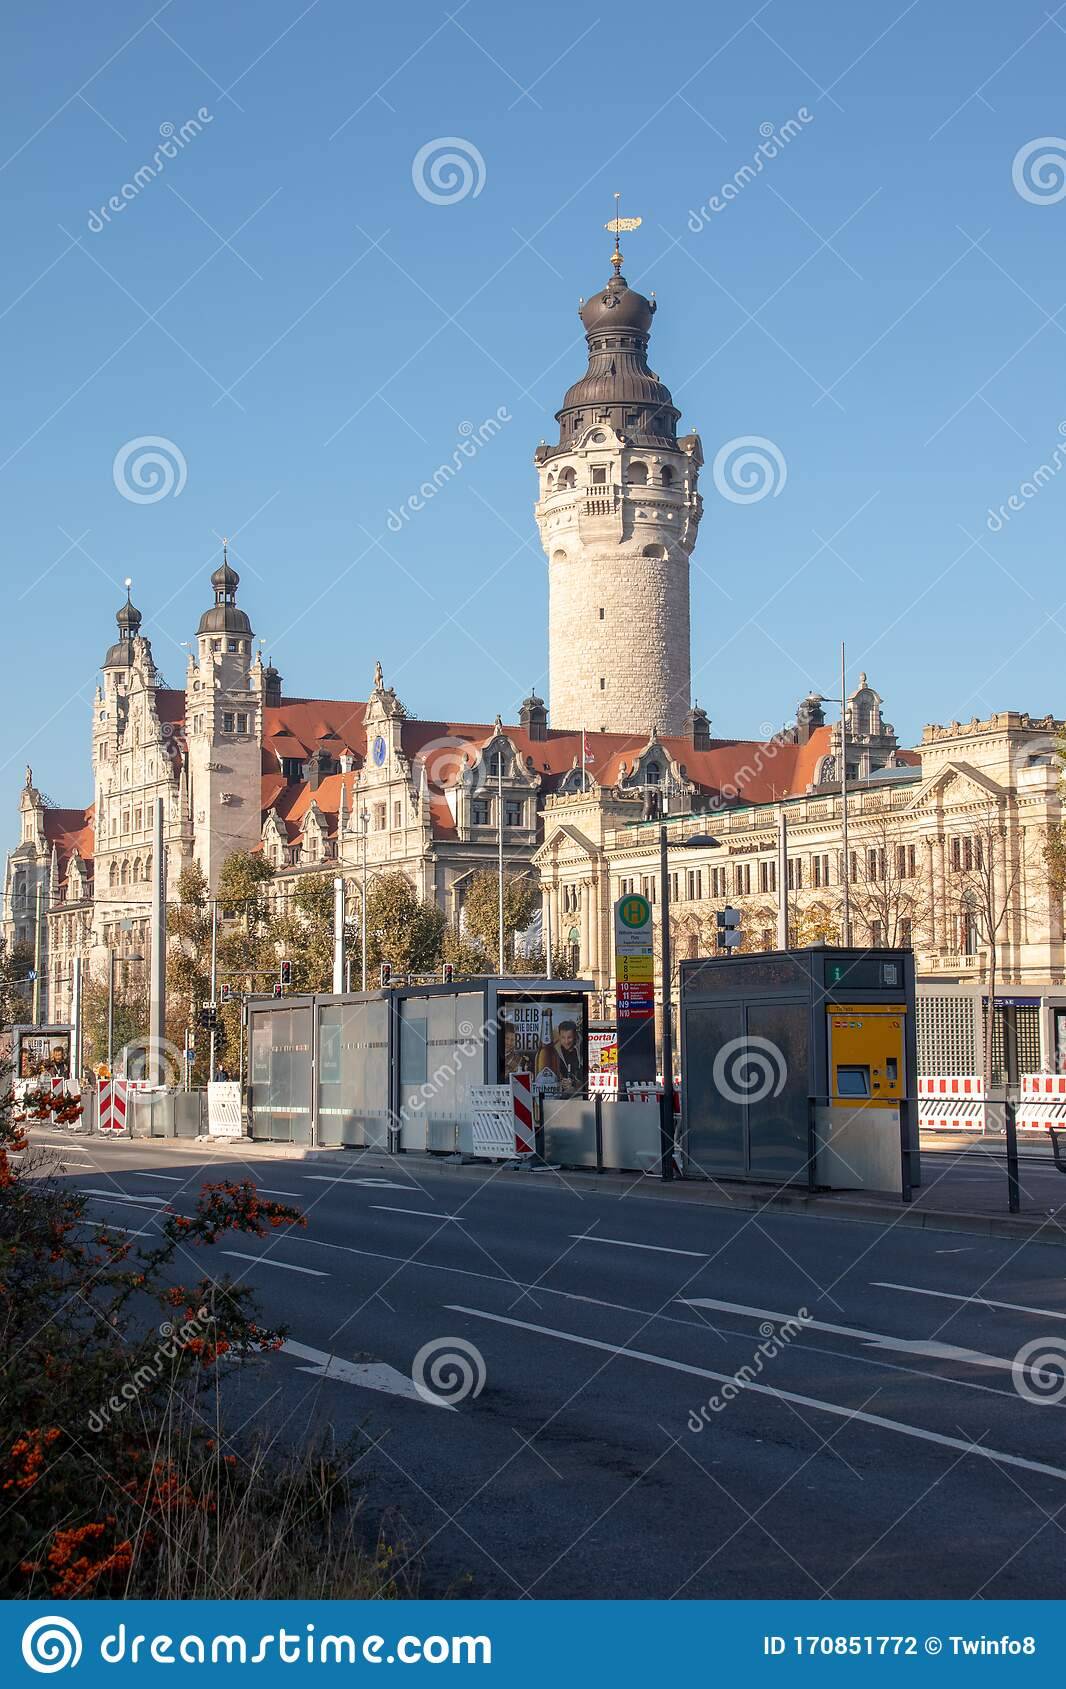 View Of The Historic Leipzig New Town Hall With A Tram Stop Of The Leipzig Public Transport Company In The Foreground Editorial Photography Image Of Cityscape Stop 170851772